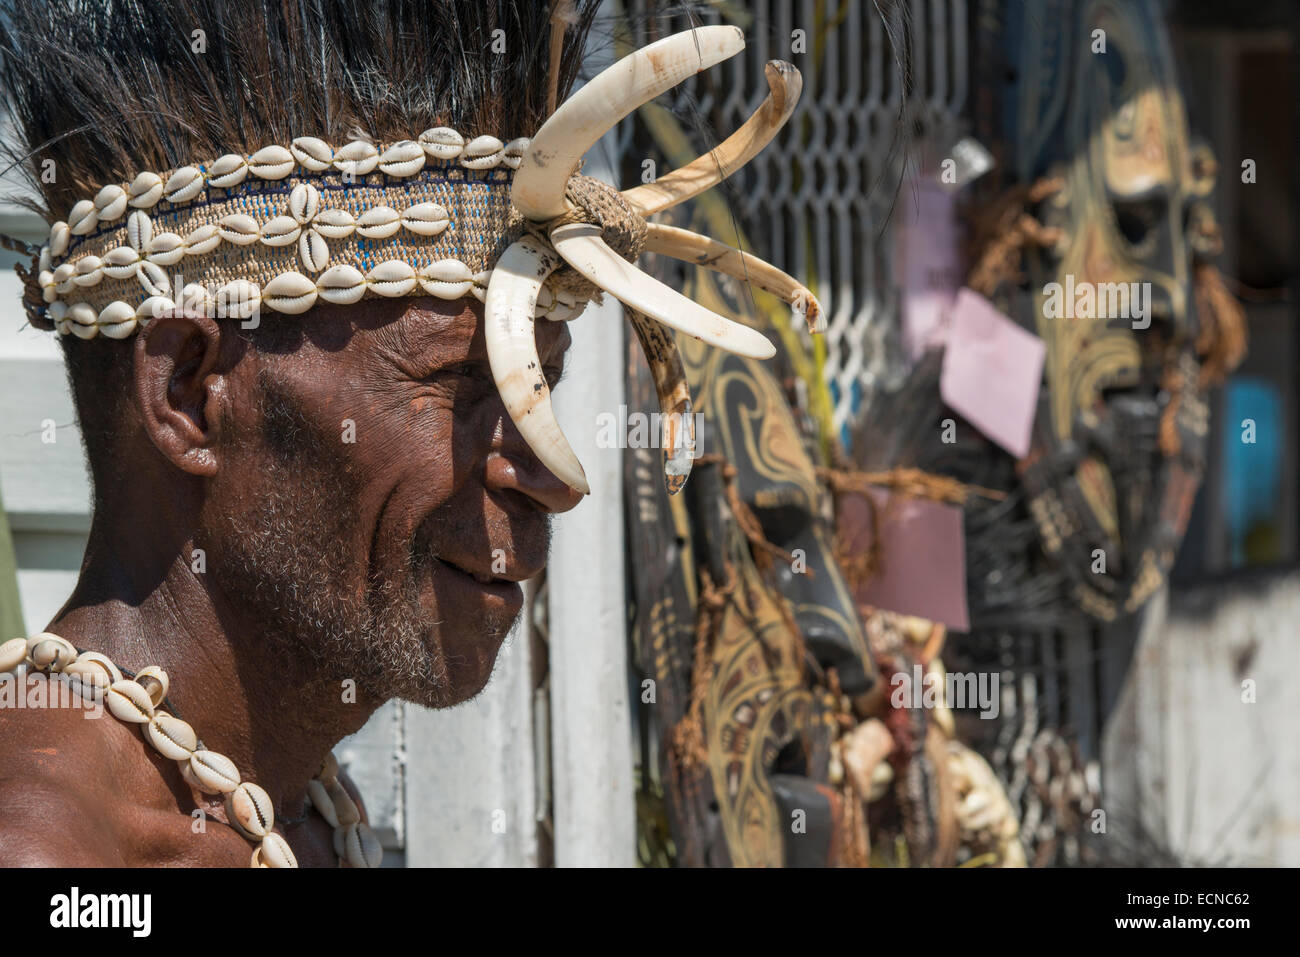 Melanesia, Papua New Guinea. Village of Vanimo. Traditional welcome sing-sing with villagers in native attire. Village - Stock Image